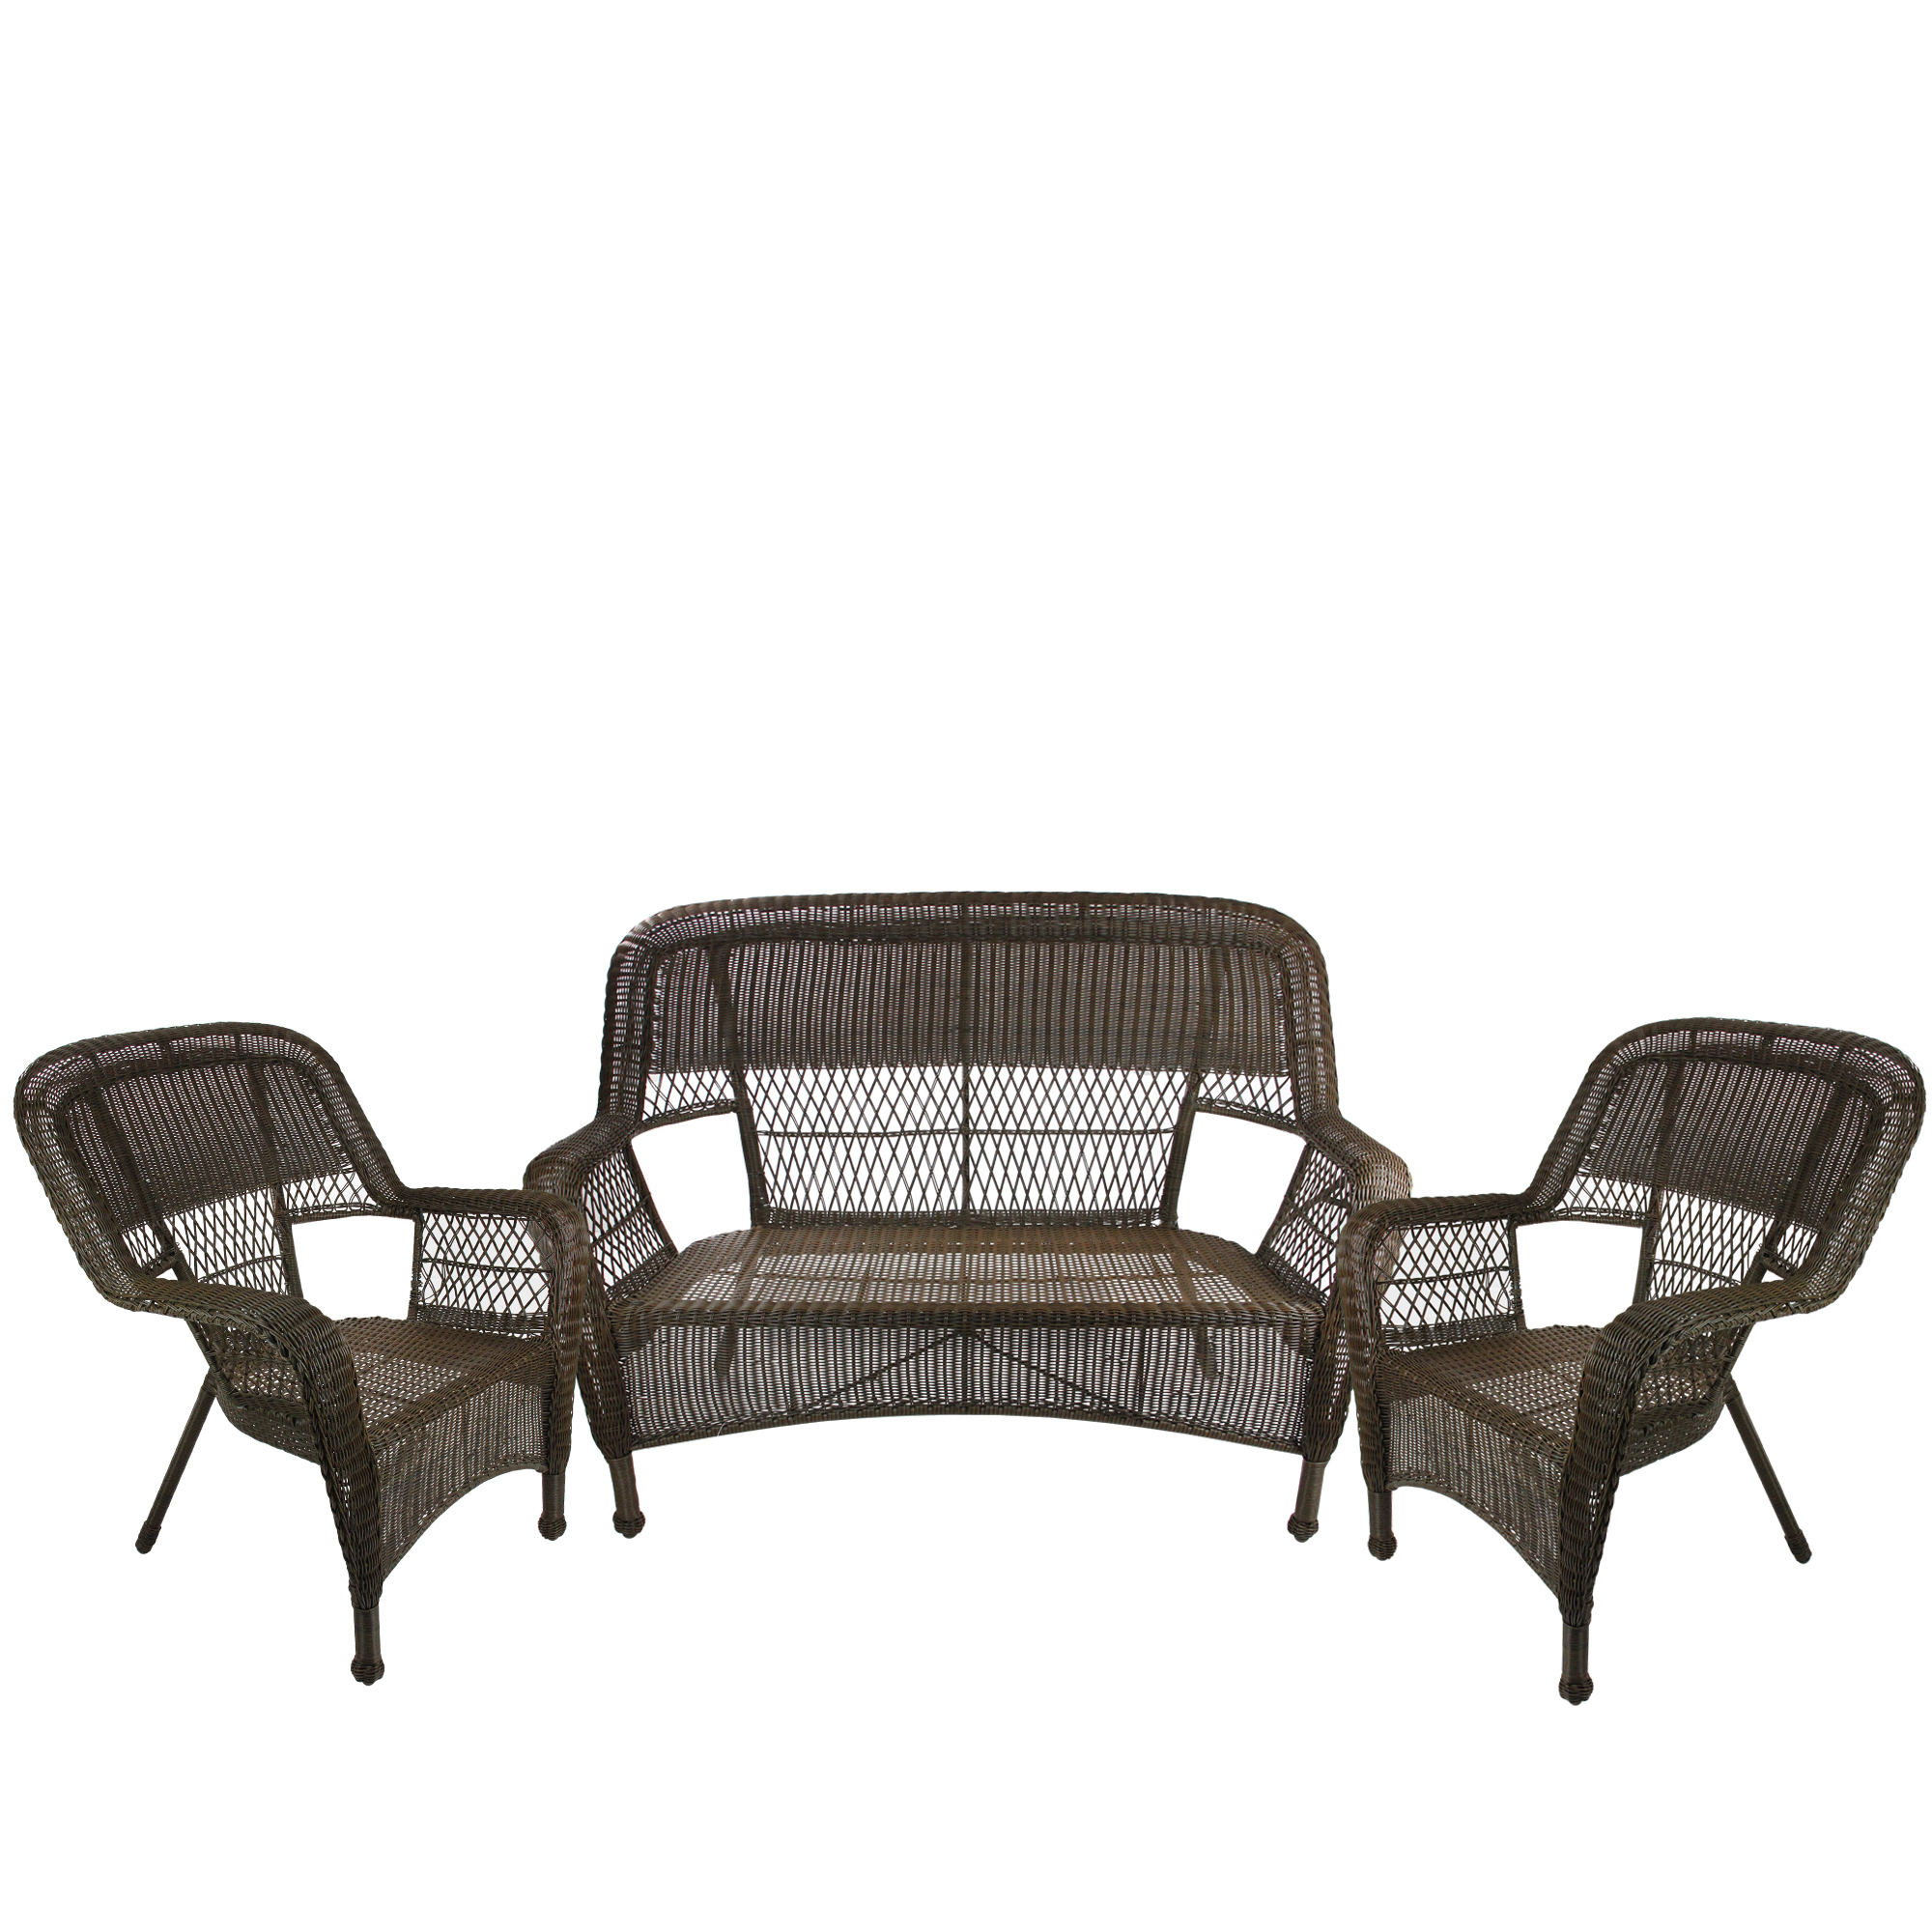 3-Piece Brown Steel Resin Outdoor Patio Furniture Set - Loveseat and 2 Chairs